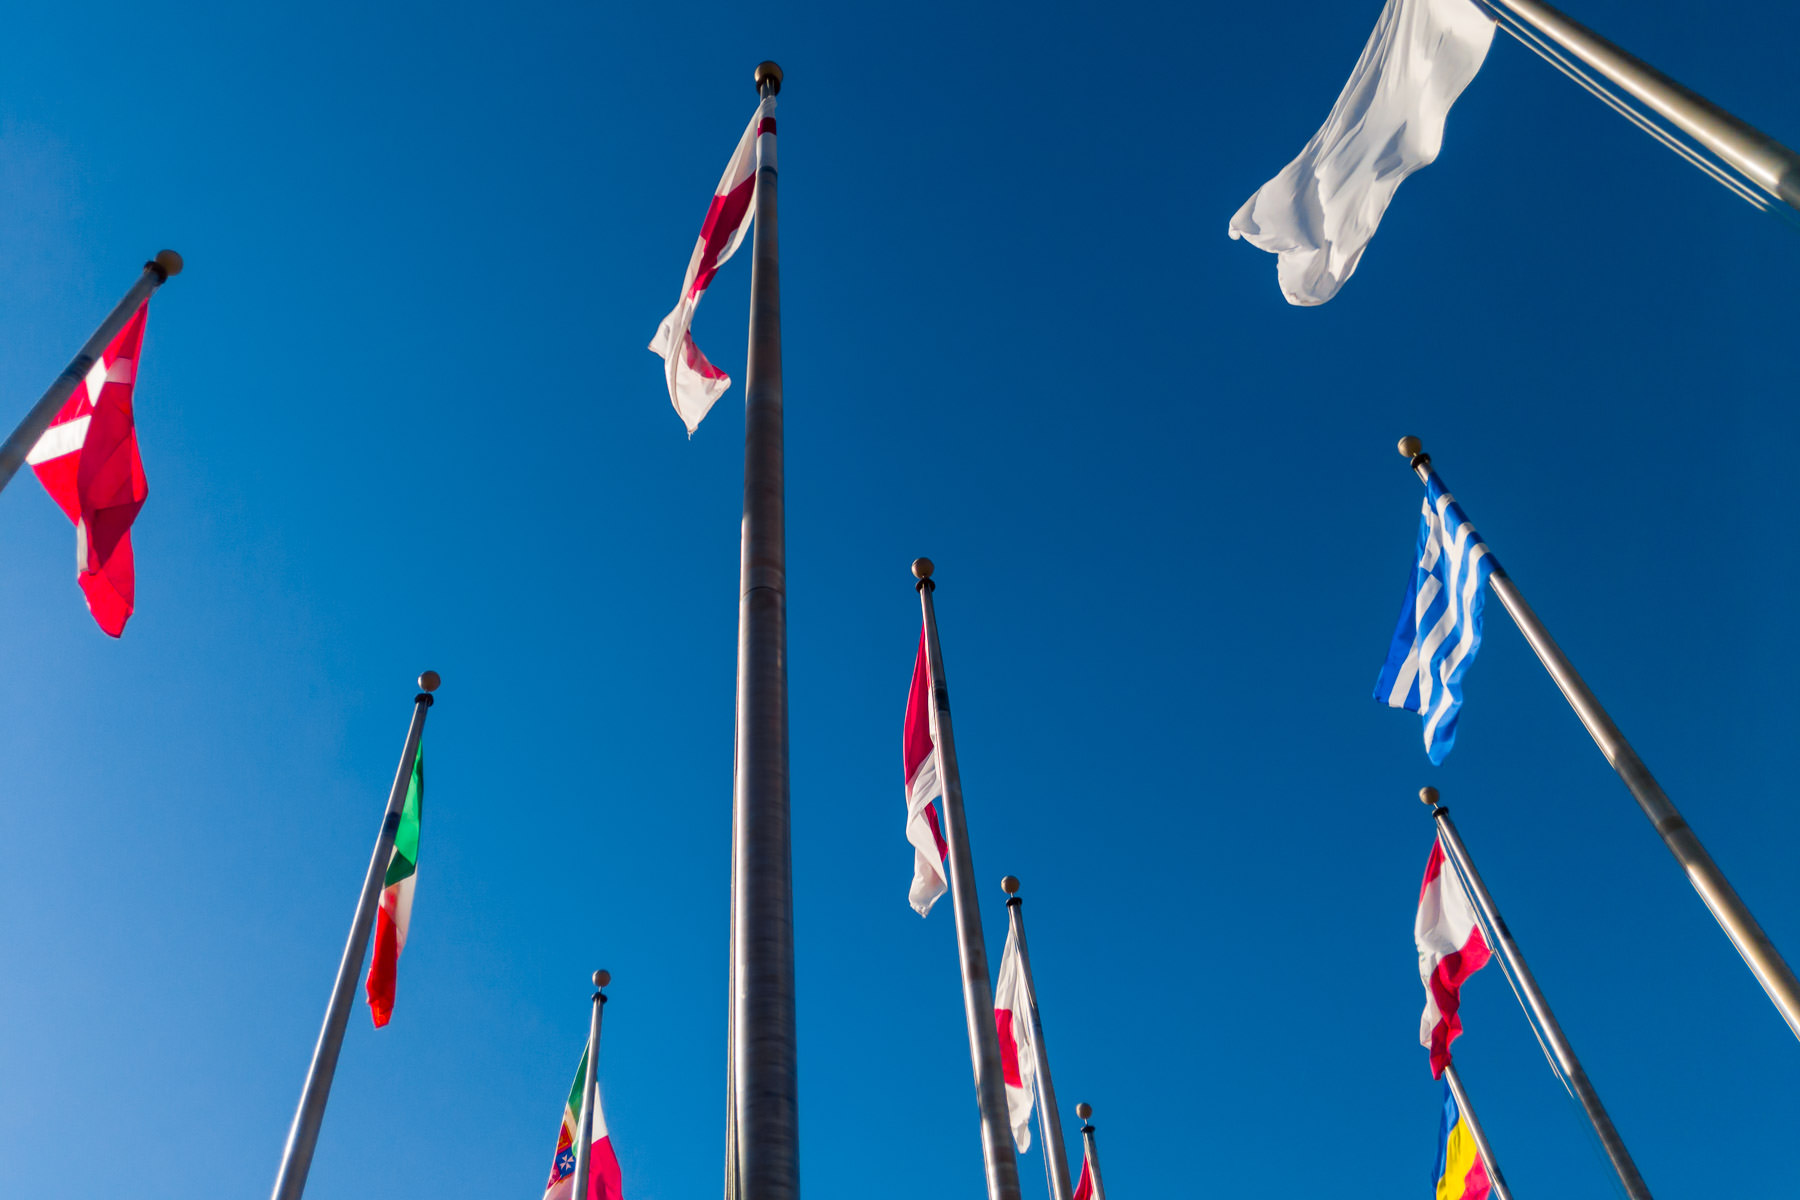 Various national flags wave in the wind at the Institute of Texan Cultures in San Antonio.